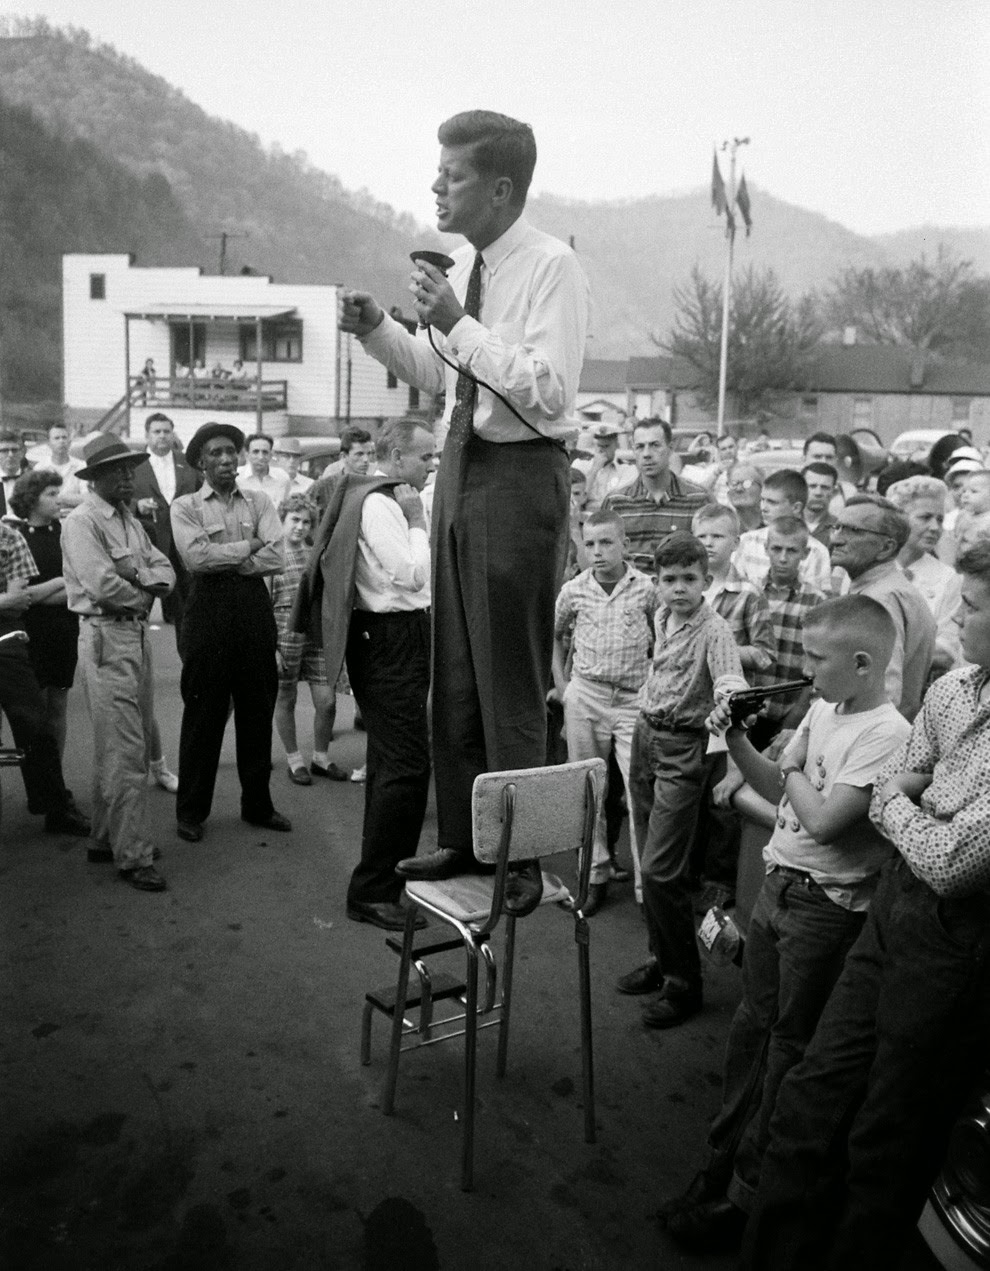 John F. Kennedy campaigns in rural West Virginia looking for support for the May 10th primary, precariously perched on a high-chair to deliver his speech,1960.